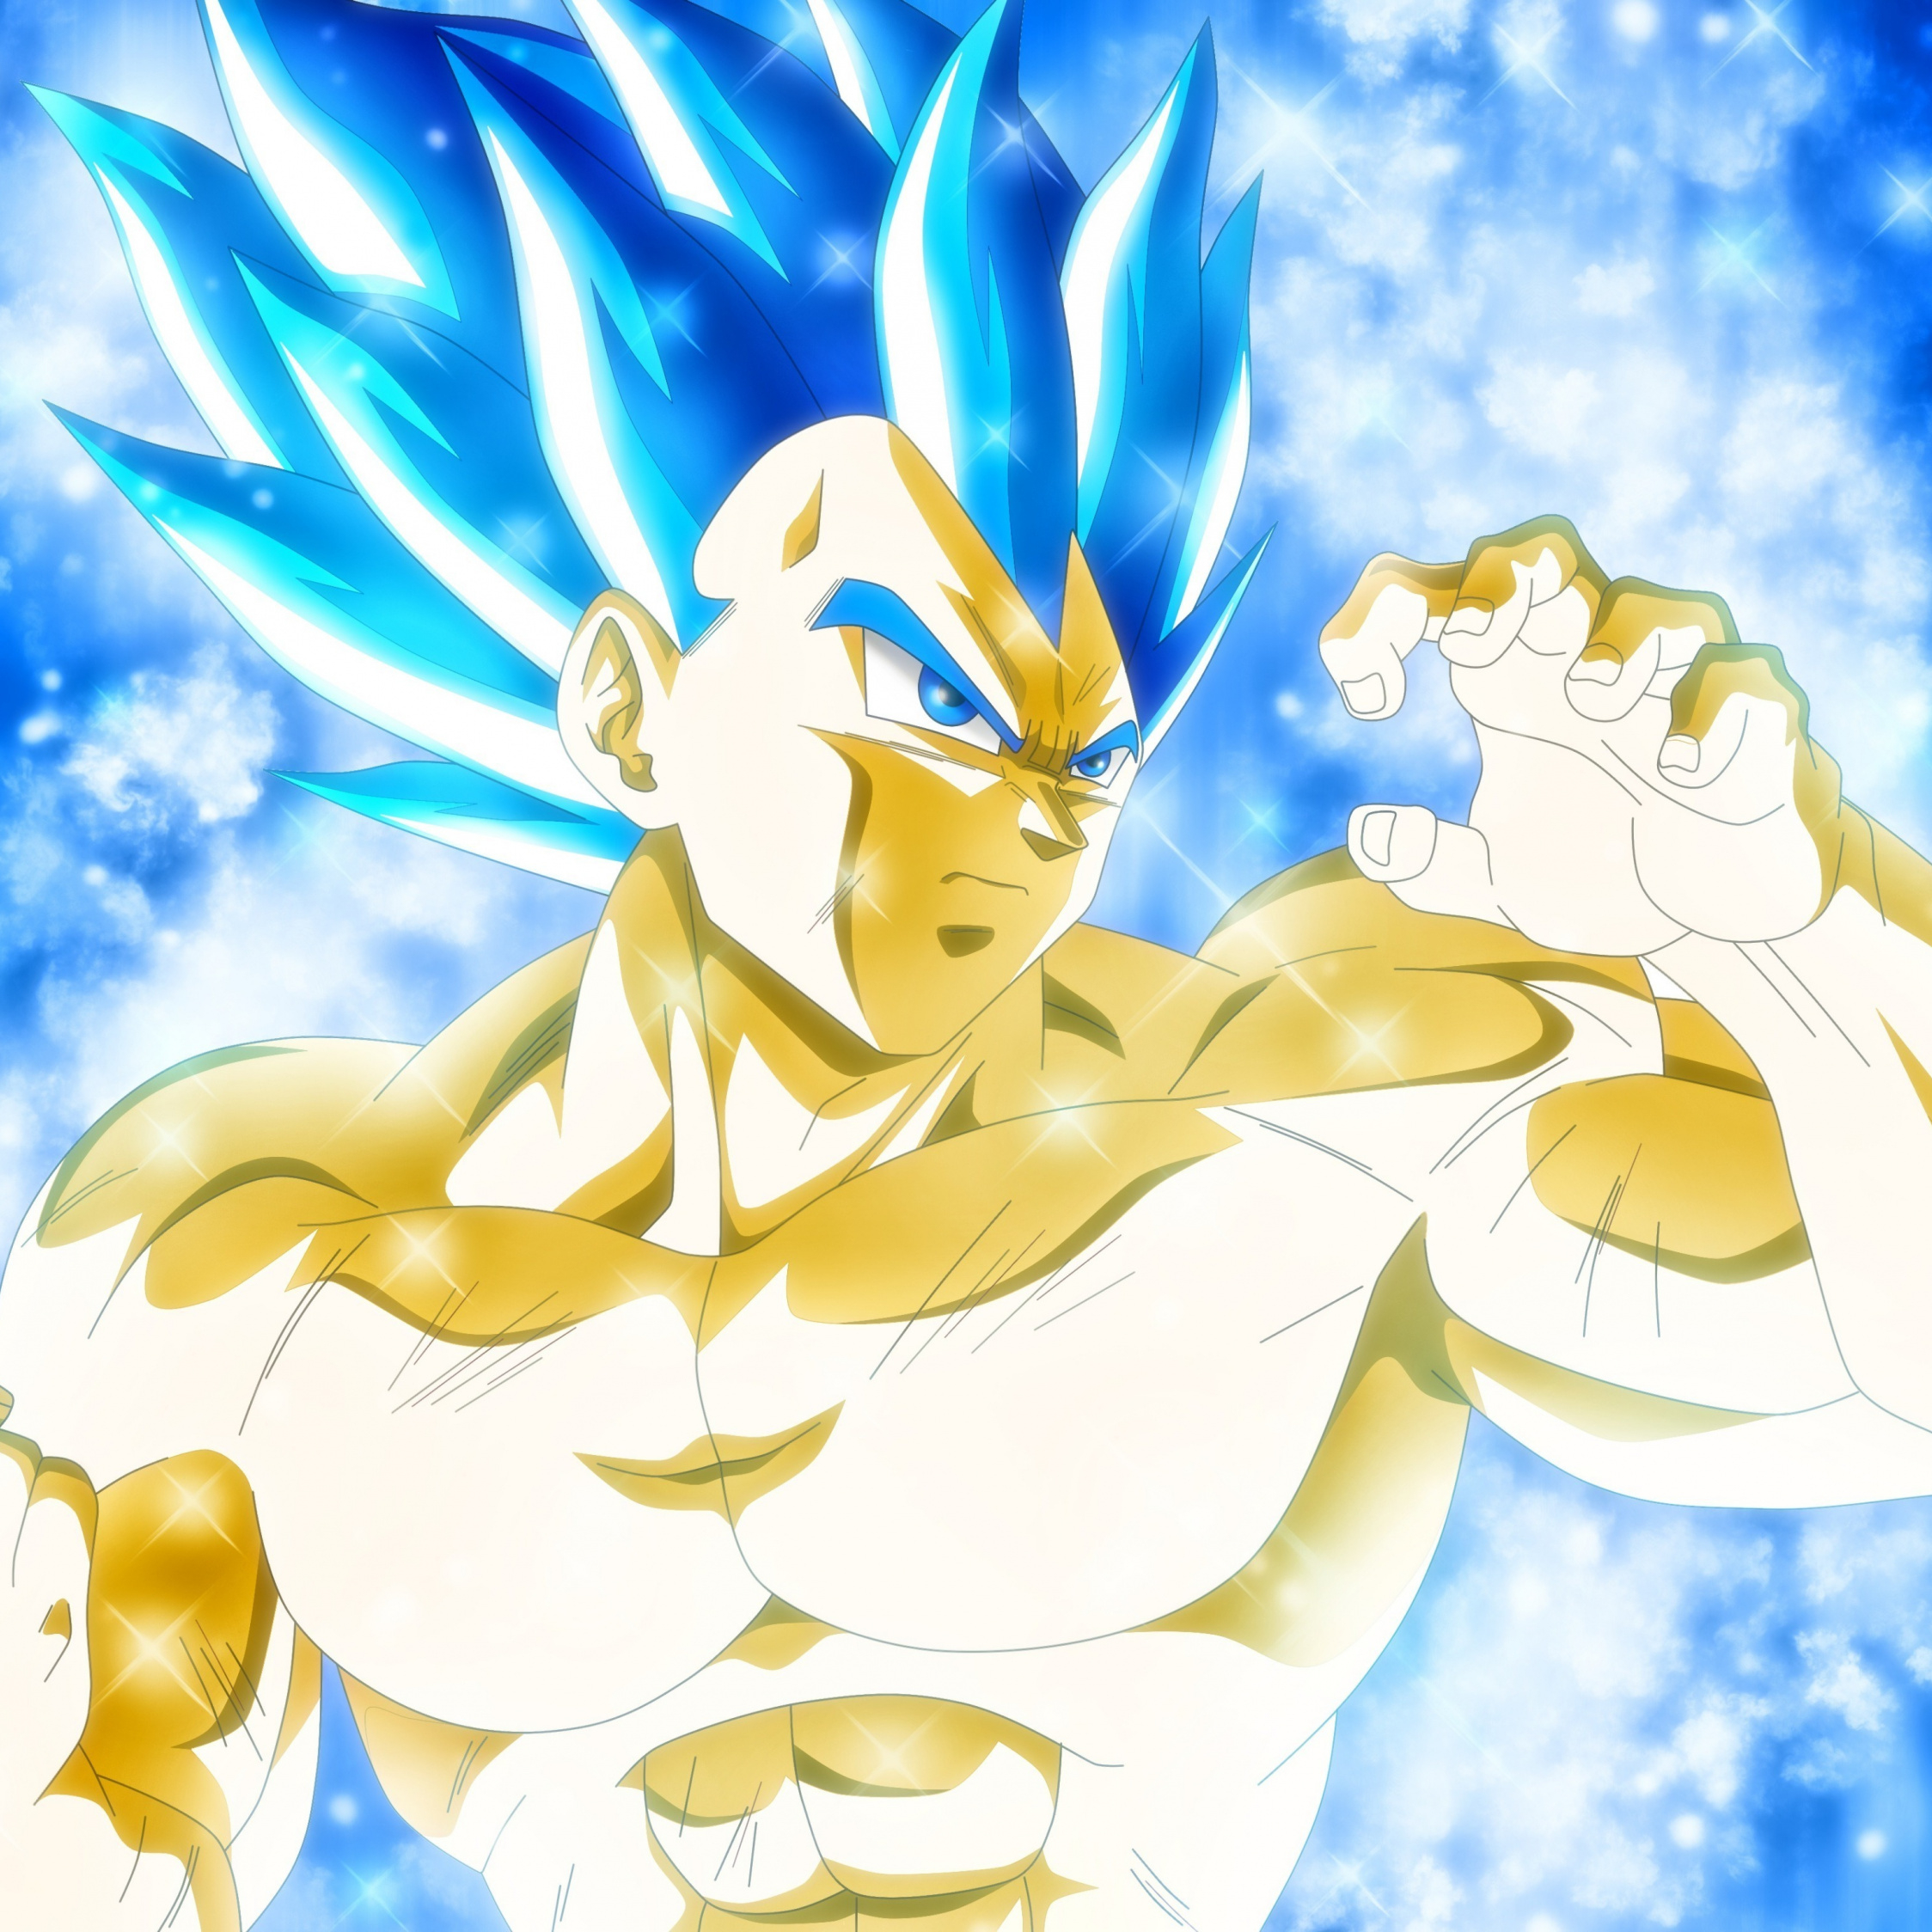 ve a ssj blue evolution wallpaper 4k